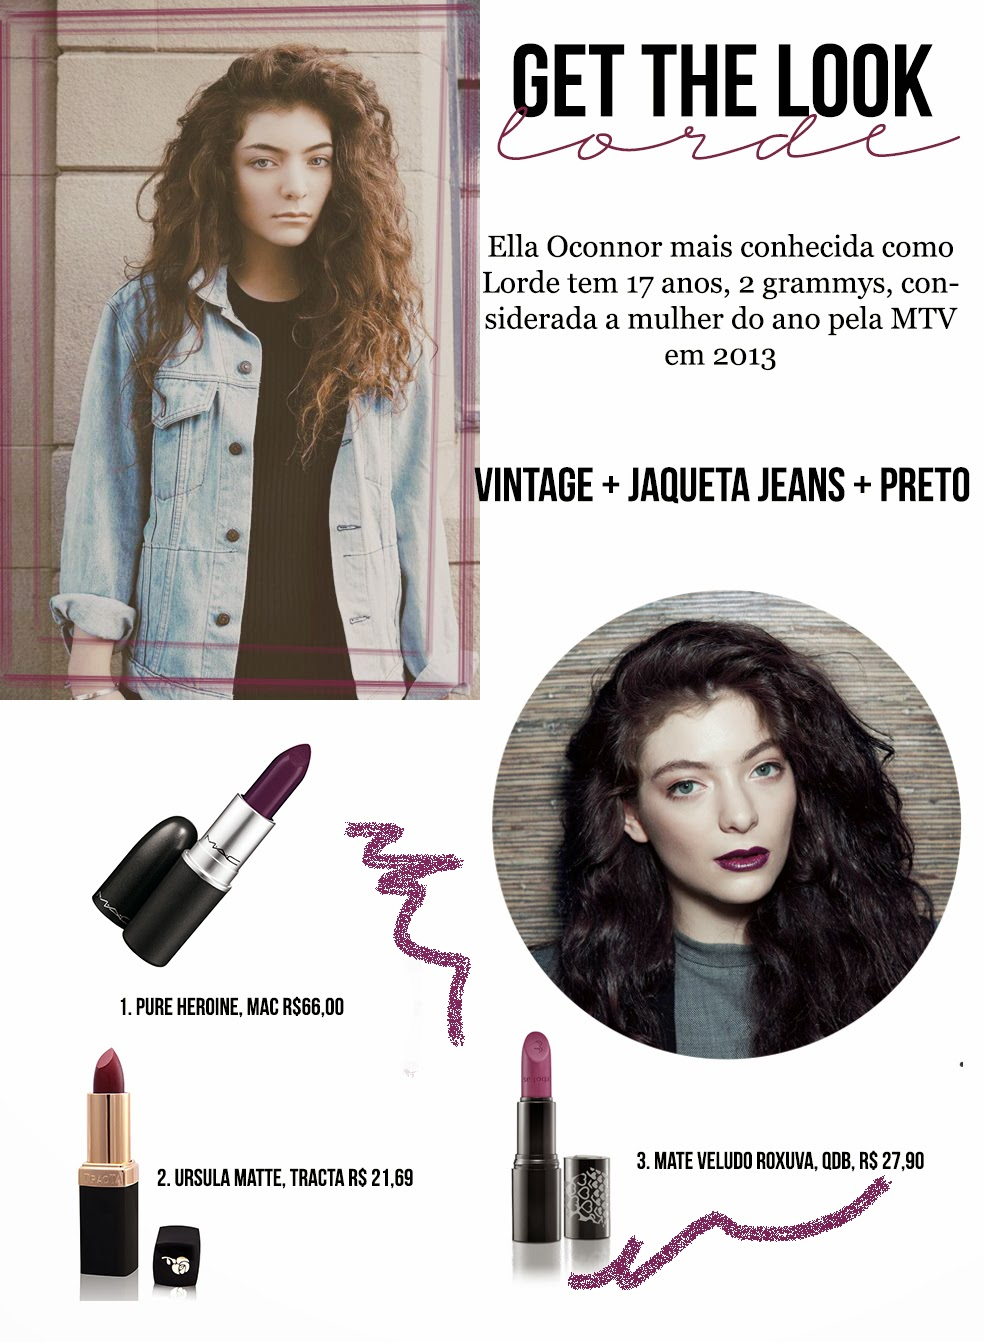 get the look lorde, pure heroine, estilo lorde